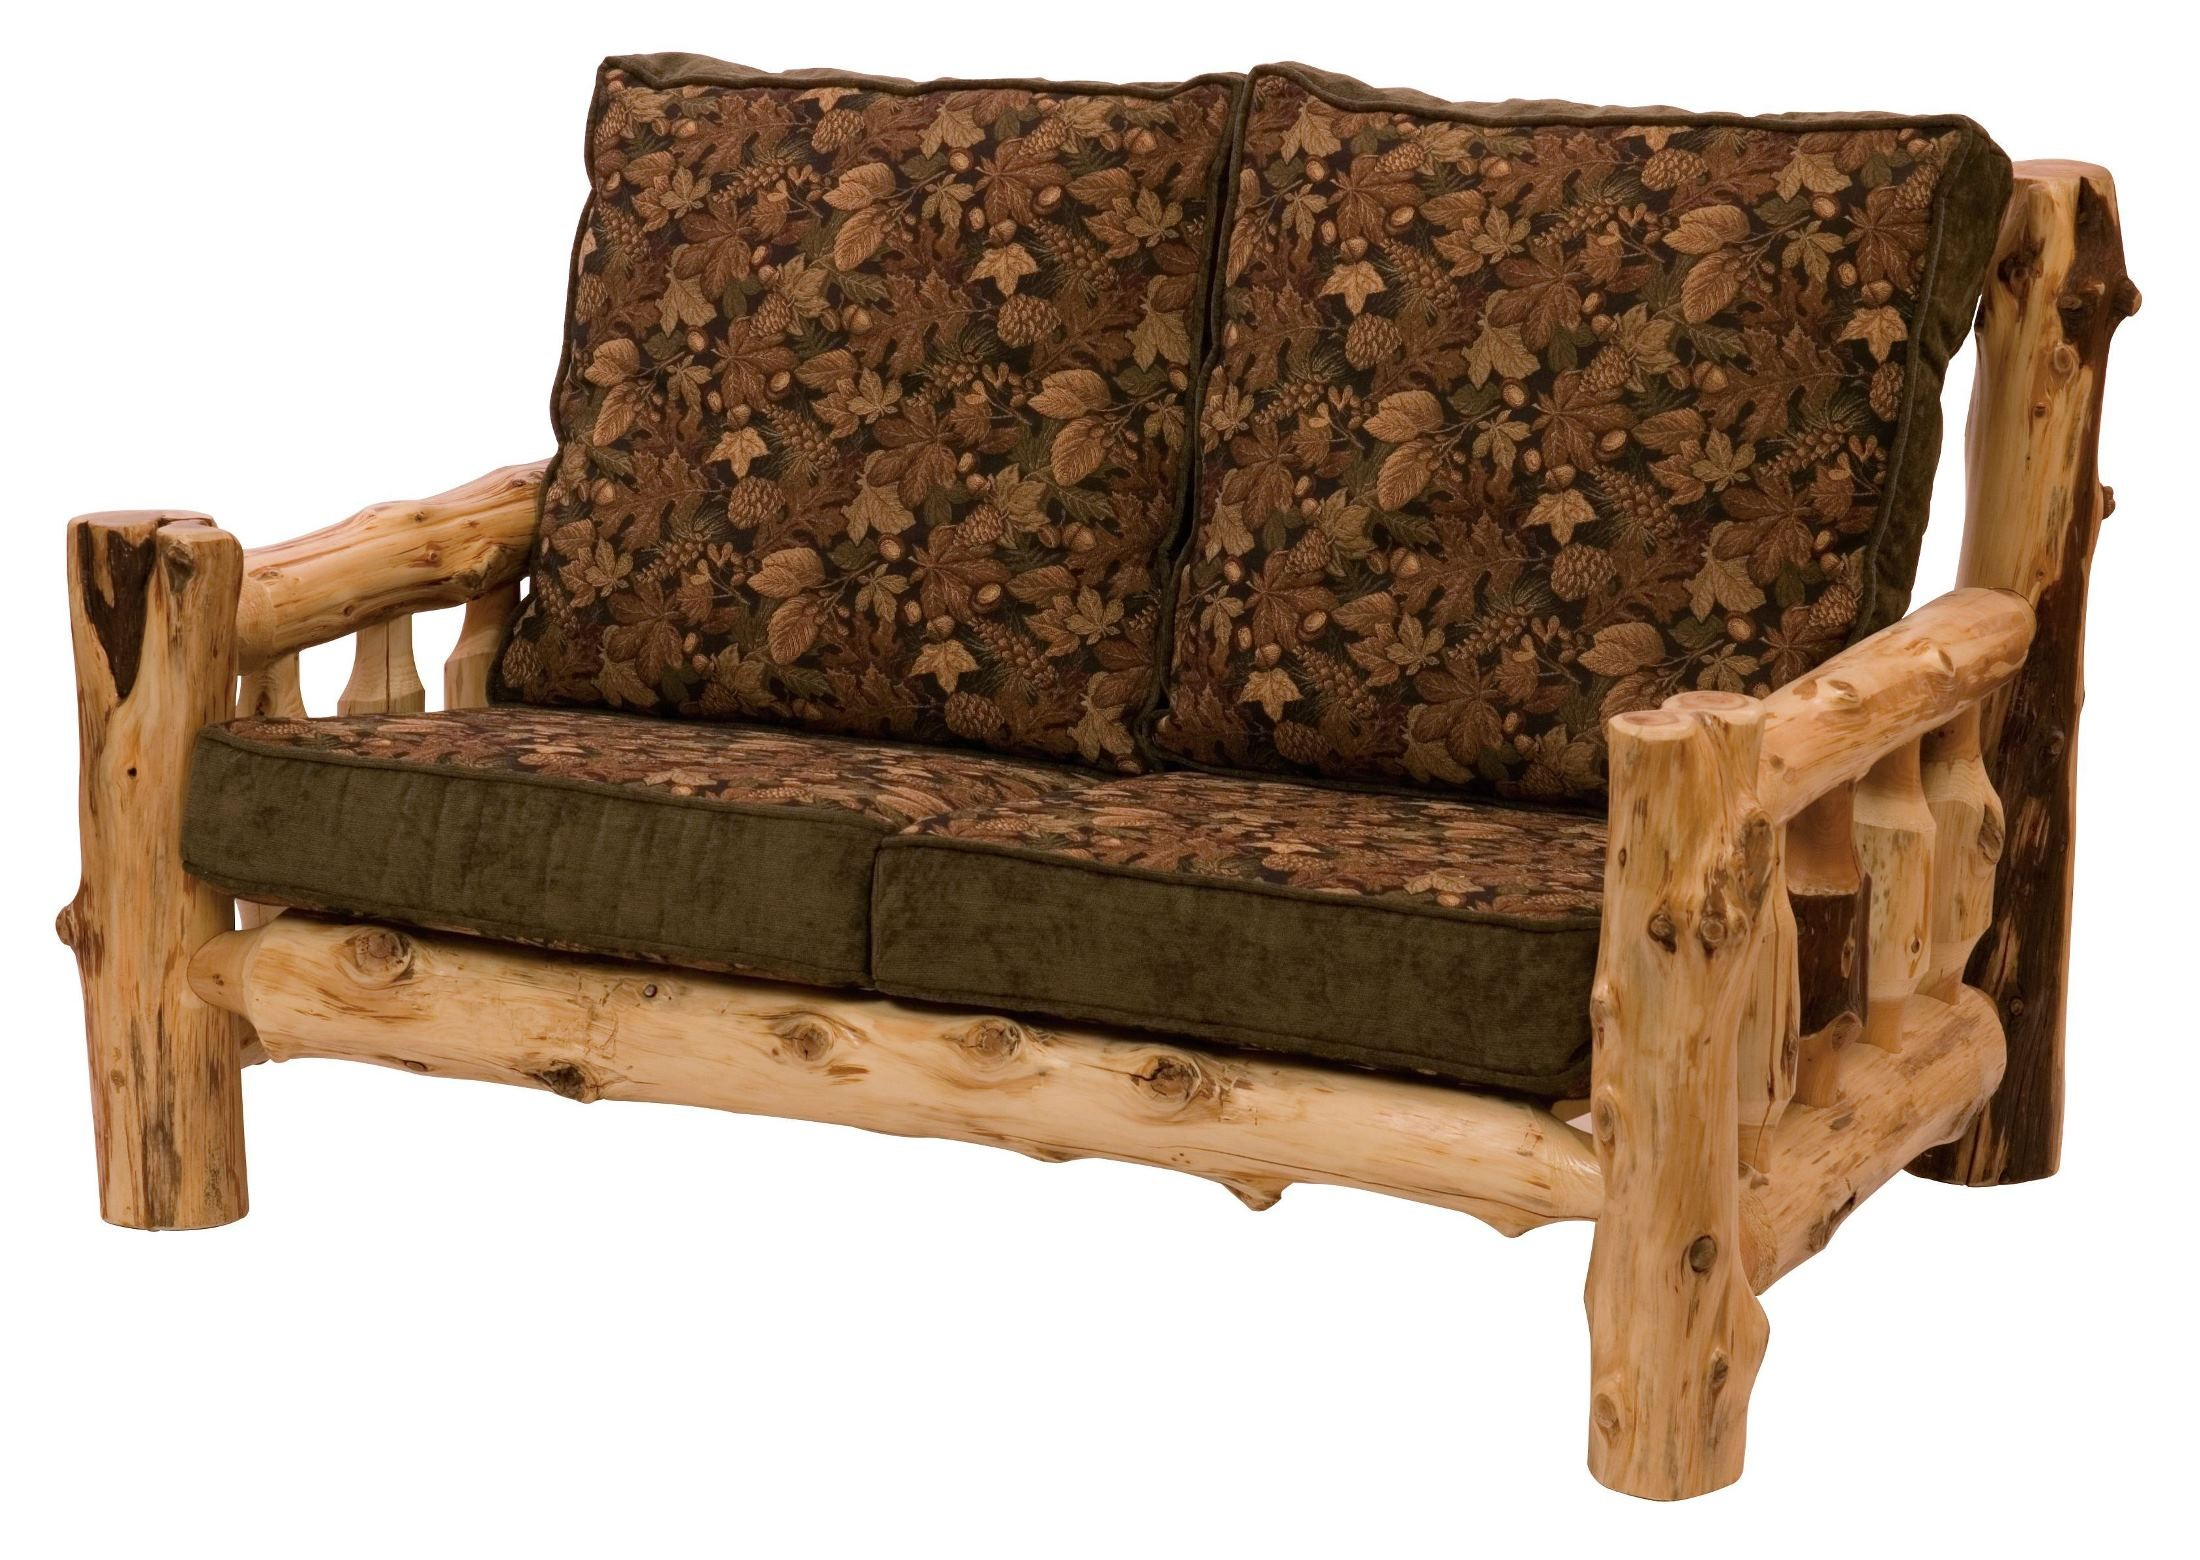 Cedar Log Frame 60 Loveseat From Fireside Lodge 13030 Coleman Furniture